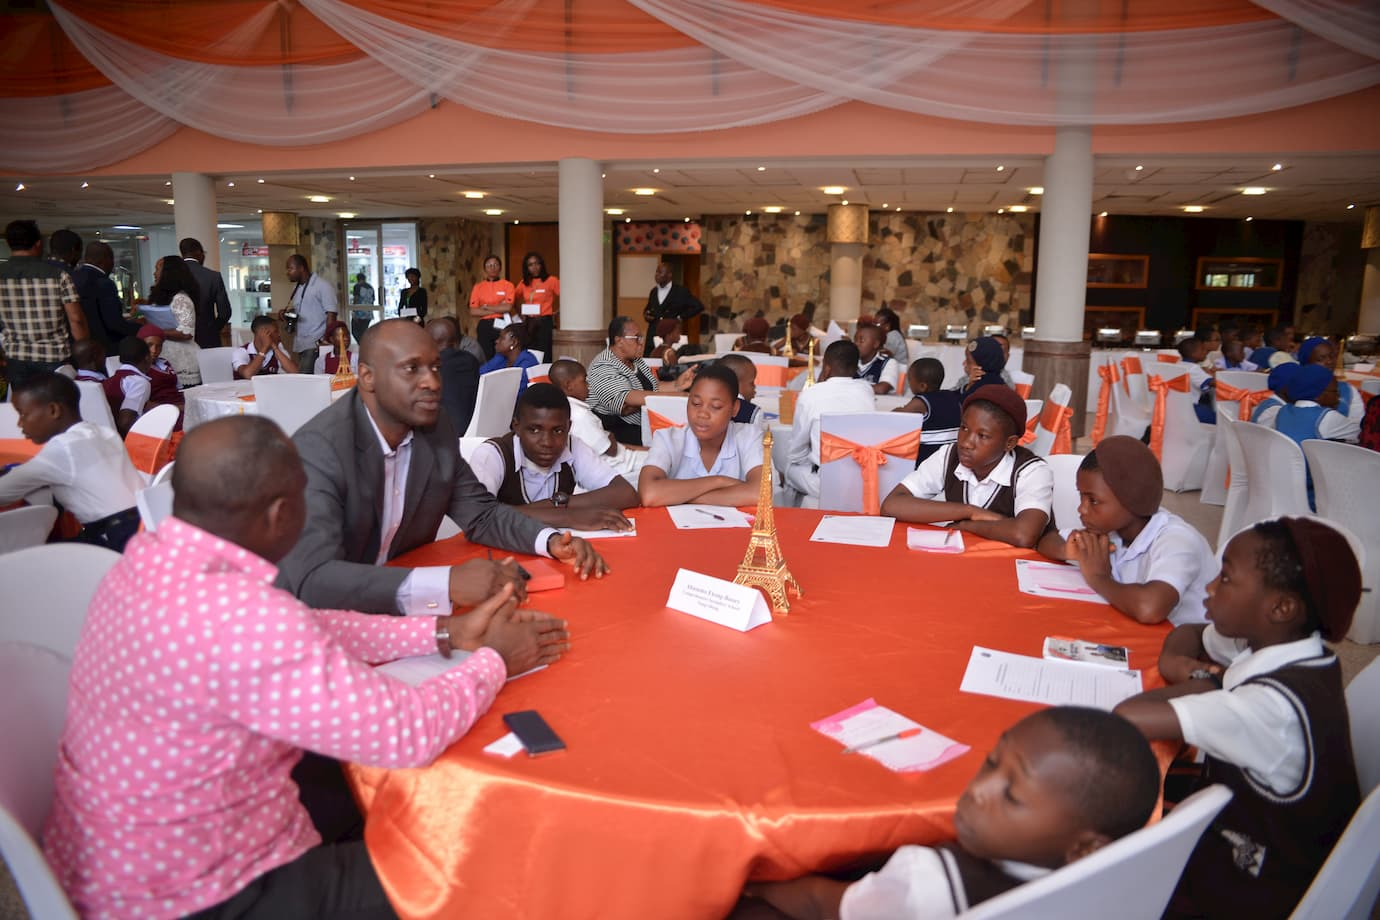 Abasumo Ekong Bassey mentoring the students ofhis adopted school Comp. Sec. Sch Nung Obong